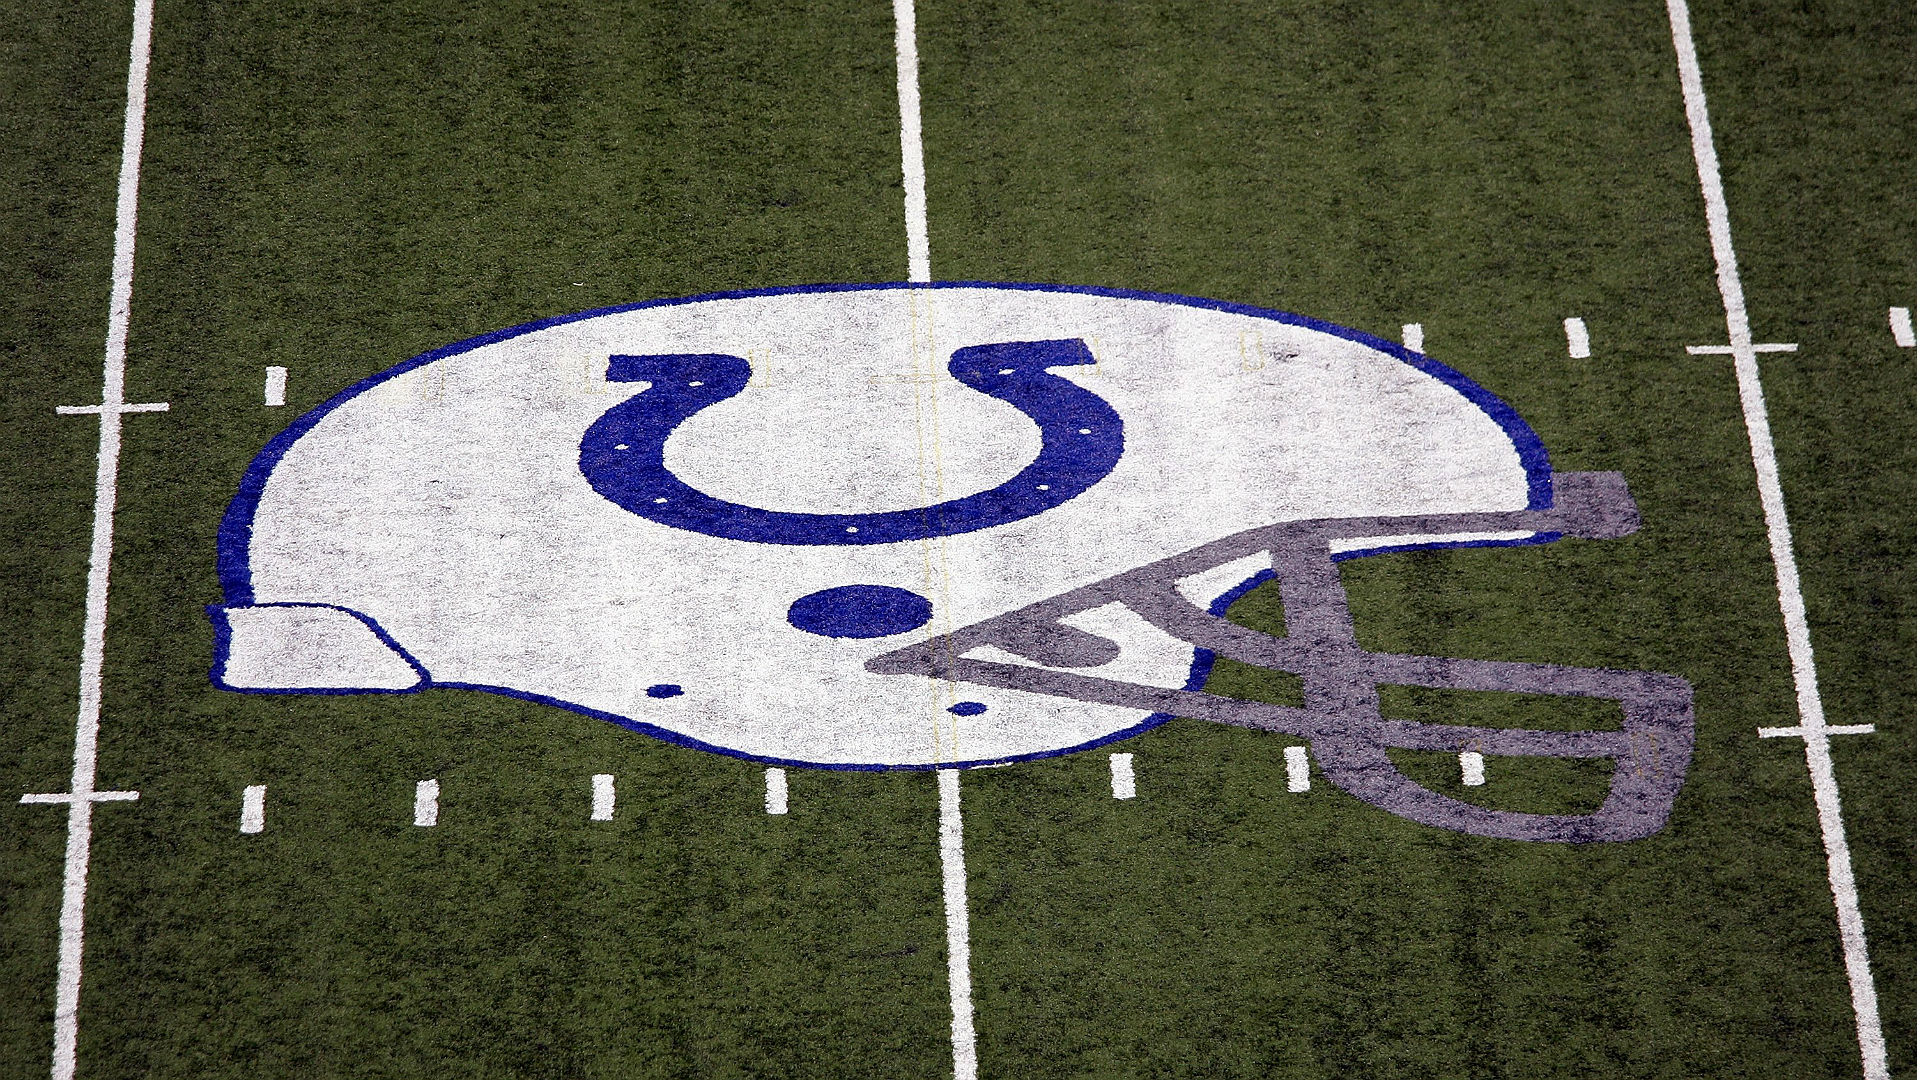 Colts announcer Bob Lamey stepped down days after using racial slur off-air